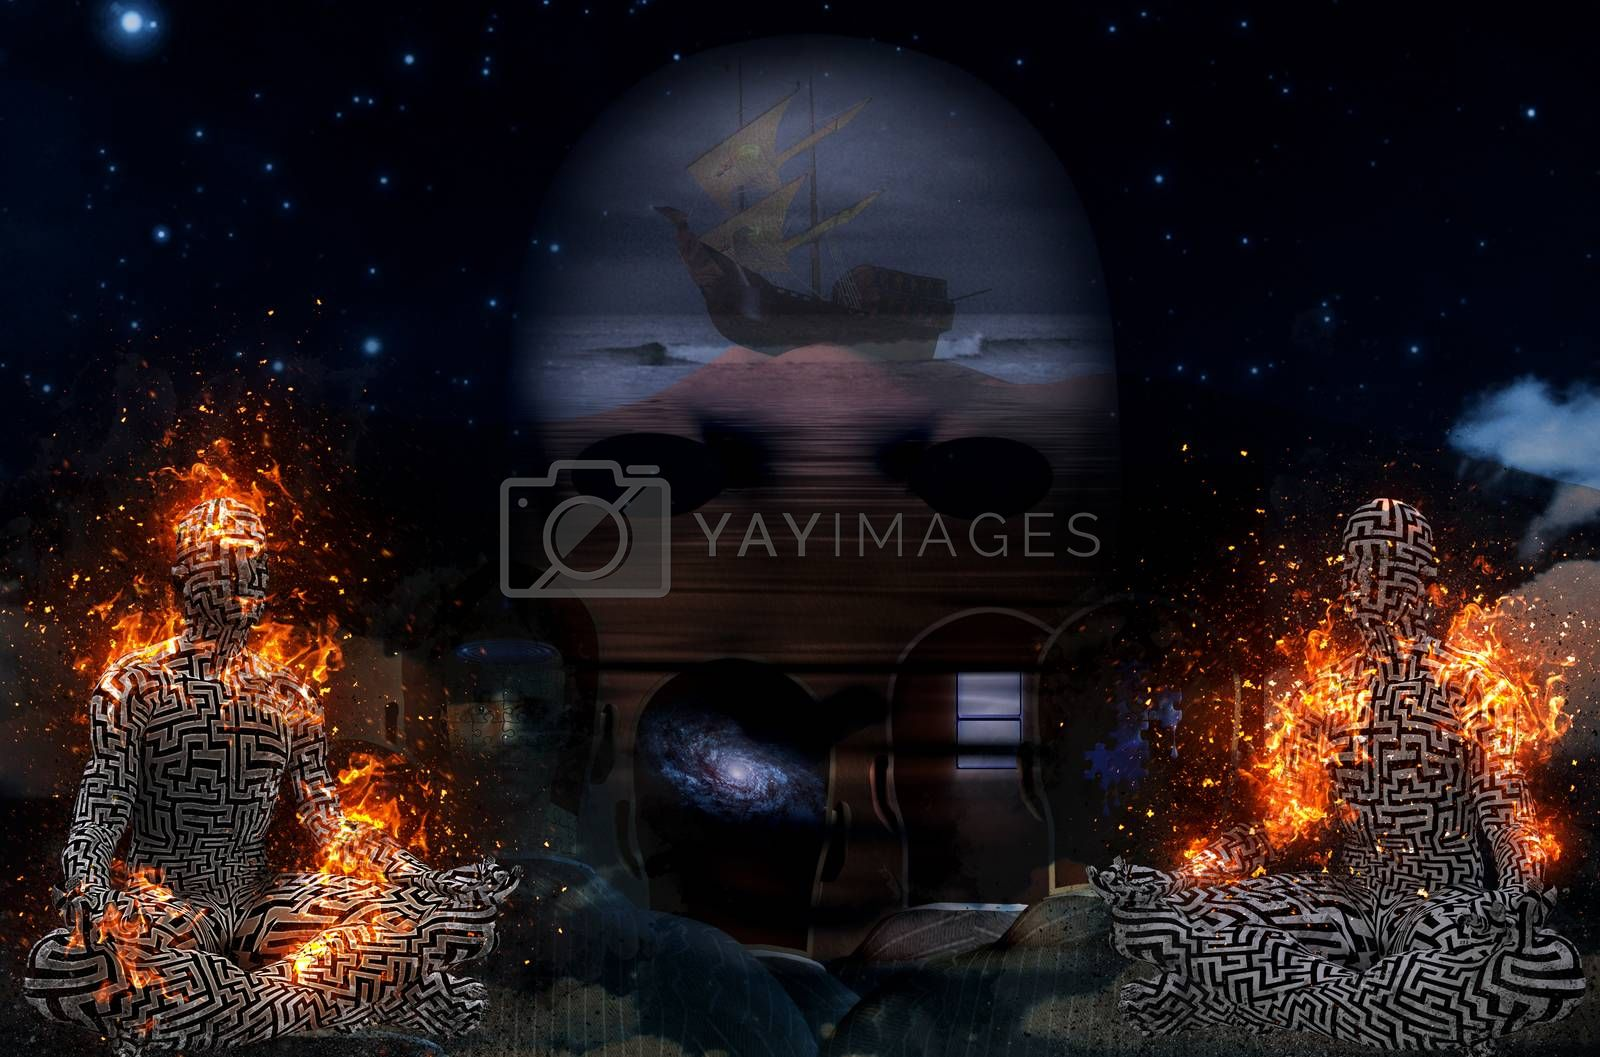 Complex surreal art. Ancient ship on a sand dune. Burning figure of man in lotus pose. Men's heads with different thoughts inside. 3D rendering